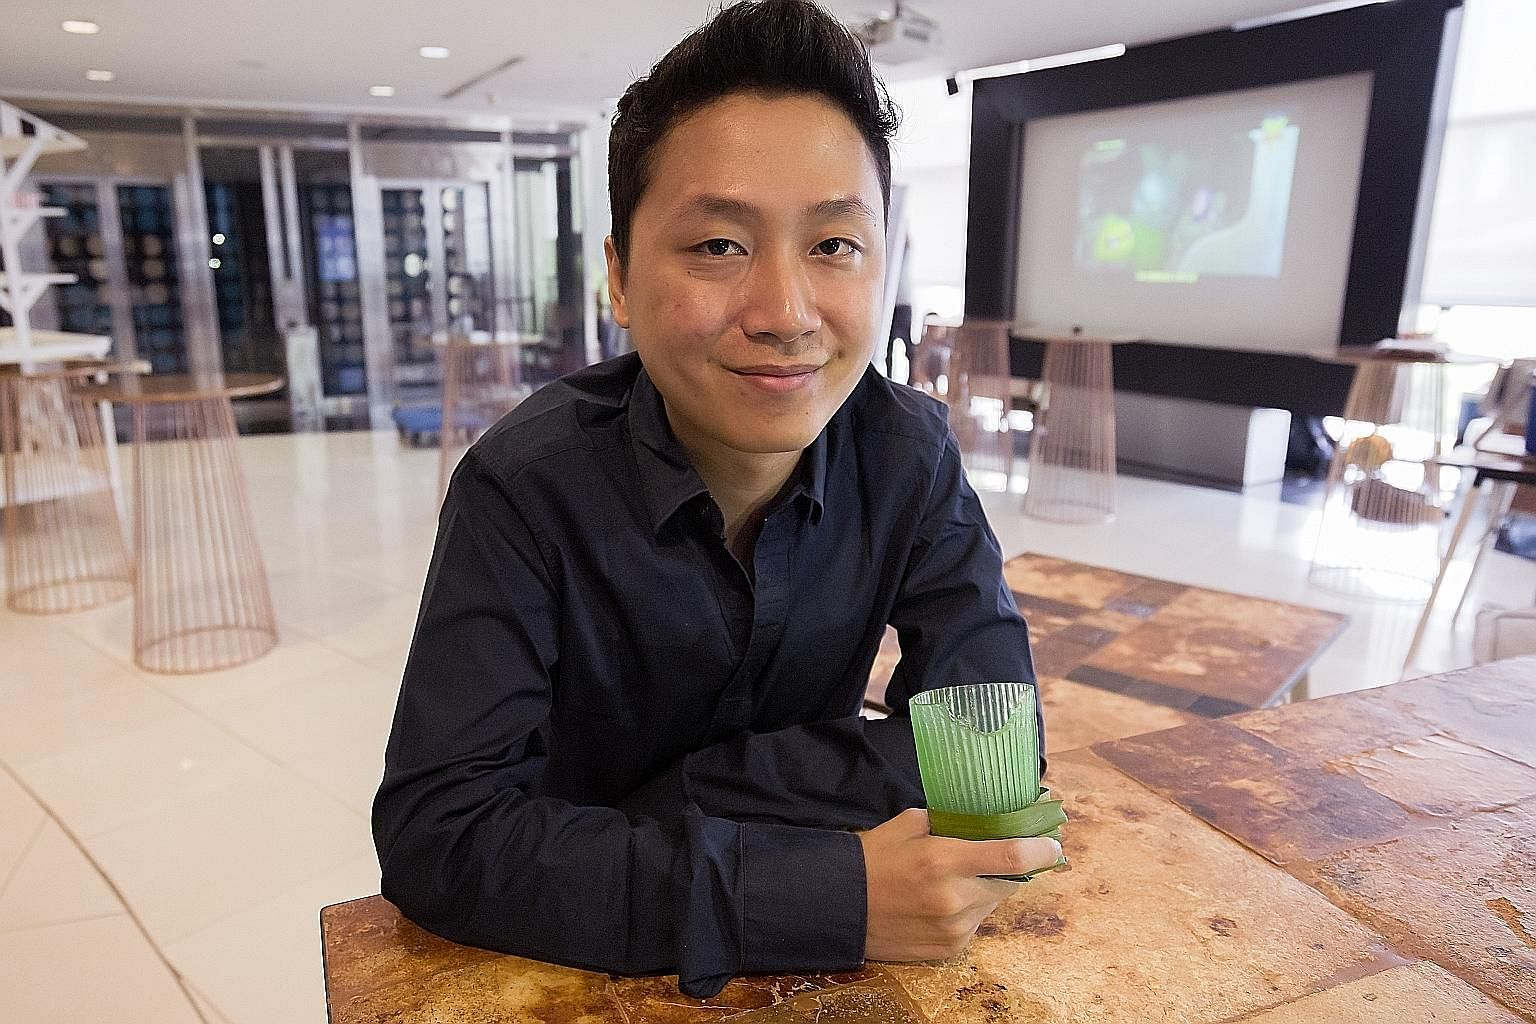 Evoware co-founder David Christian (above) with Ello Jello, a squishy, edible single-use cup made of seaweed.